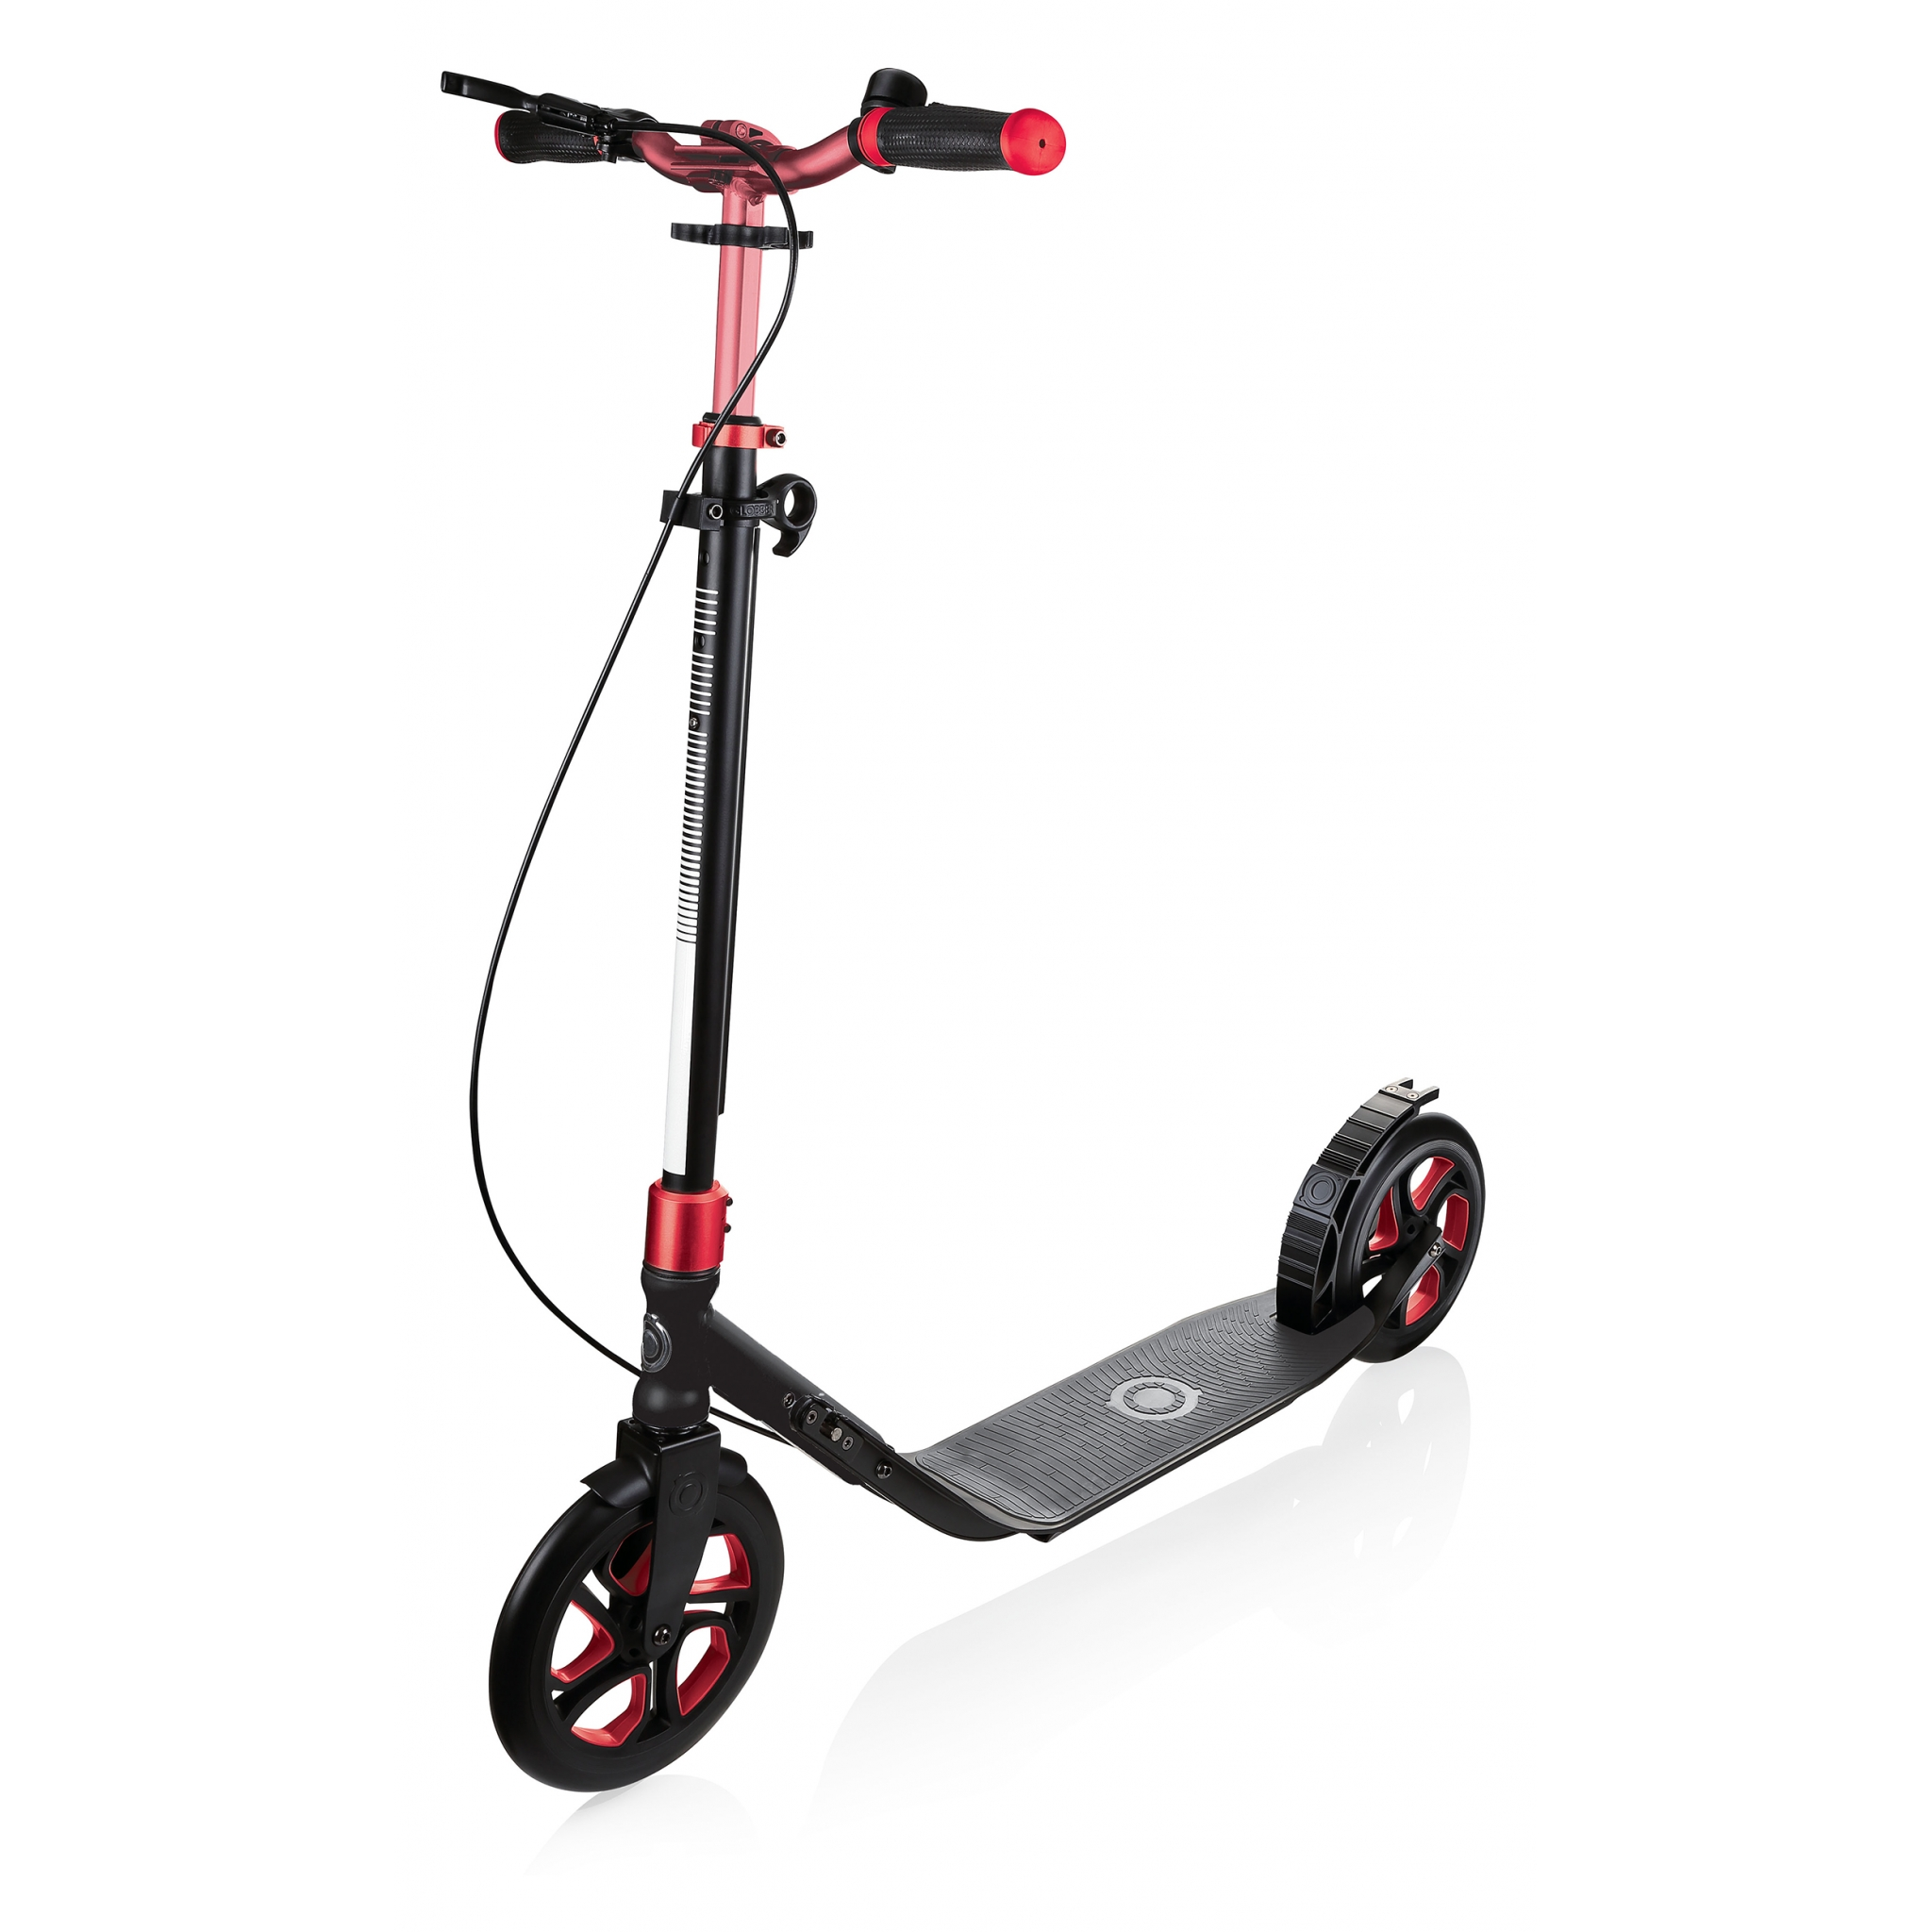 Globber One Nl 230 Ultimate 2 Wheel Scooter For S Fold Up With Handbrake Bell 230mm Wheels